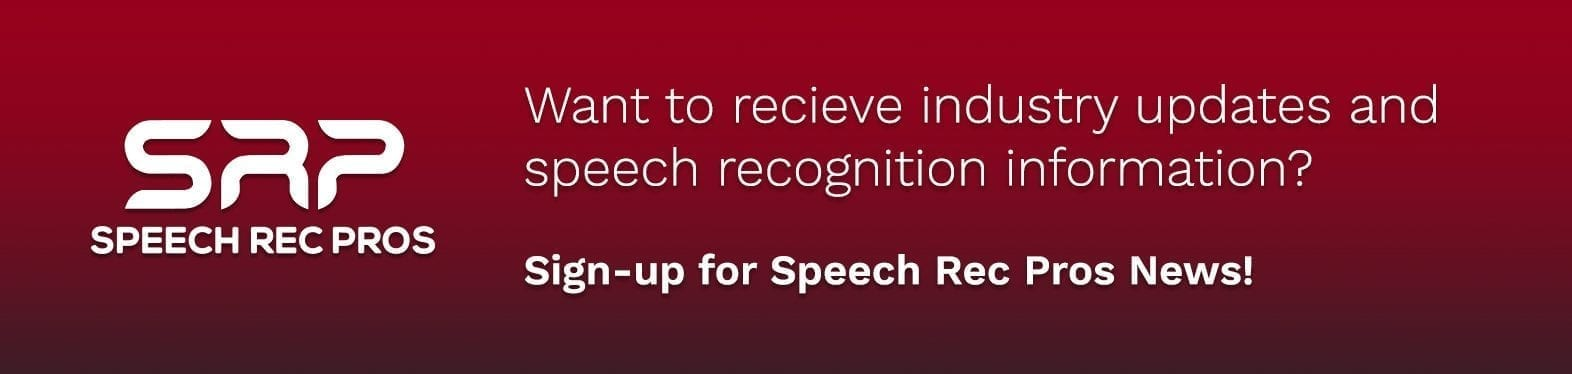 Speech Rec Pros Newsletter Sign-up